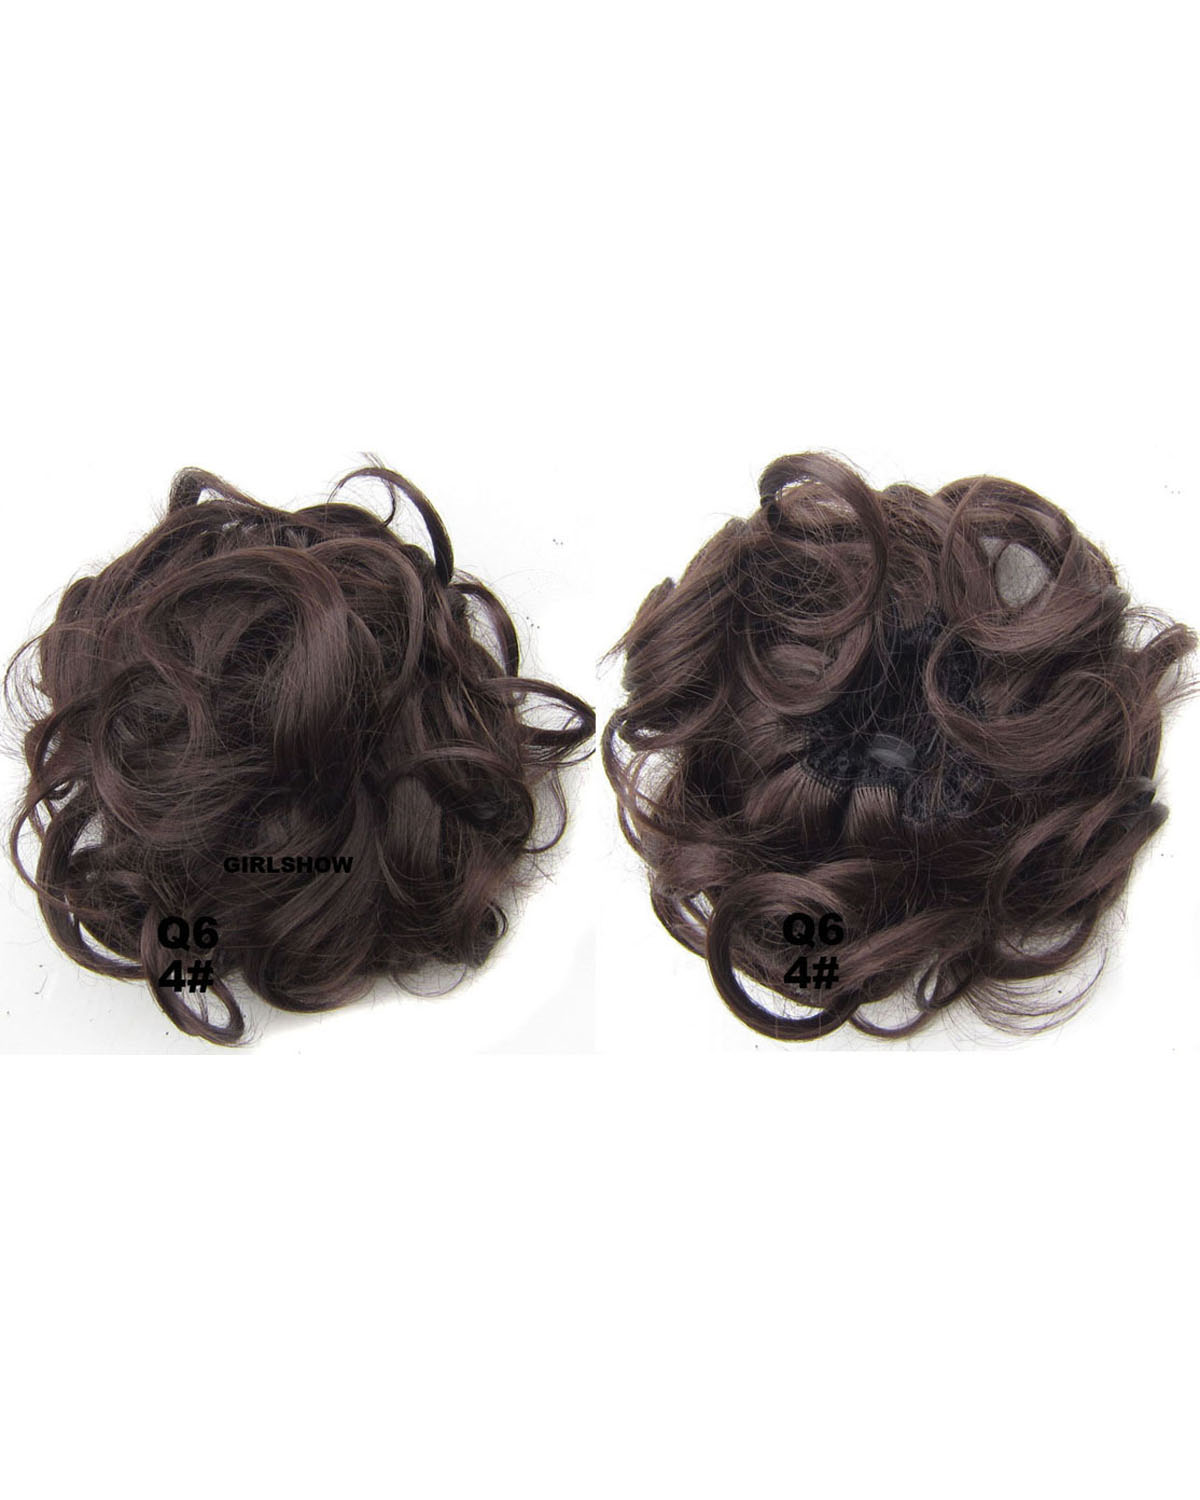 Ladies Elegant and Popular Curly and Short Hair Buns Drawstring Synthetic Hair Extension Bride Scrunchies  4#